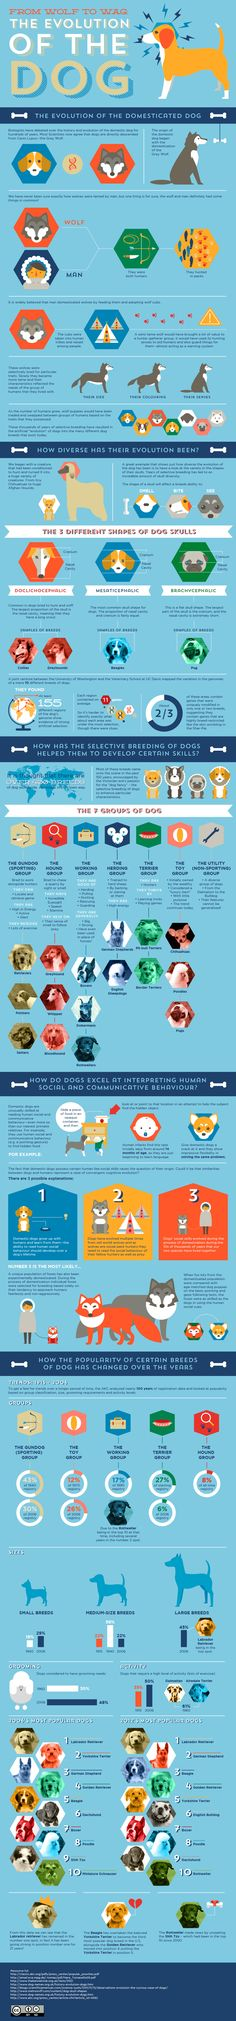 Most Popular Groups and Sizes of Dogs Infographic